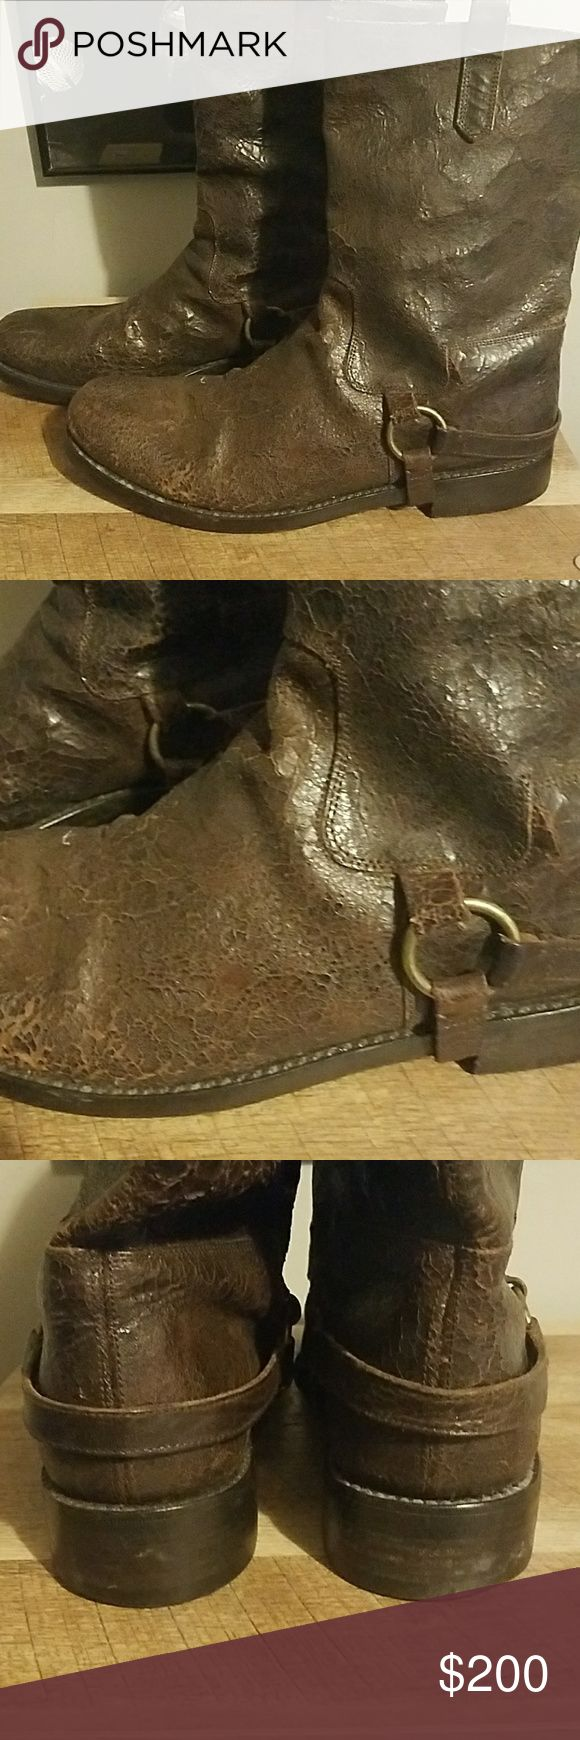 John Varvatos boots Very nice pair of John Varvatos distressed leather boots handmade in Italy gently worn John Varvatos Shoes Boots